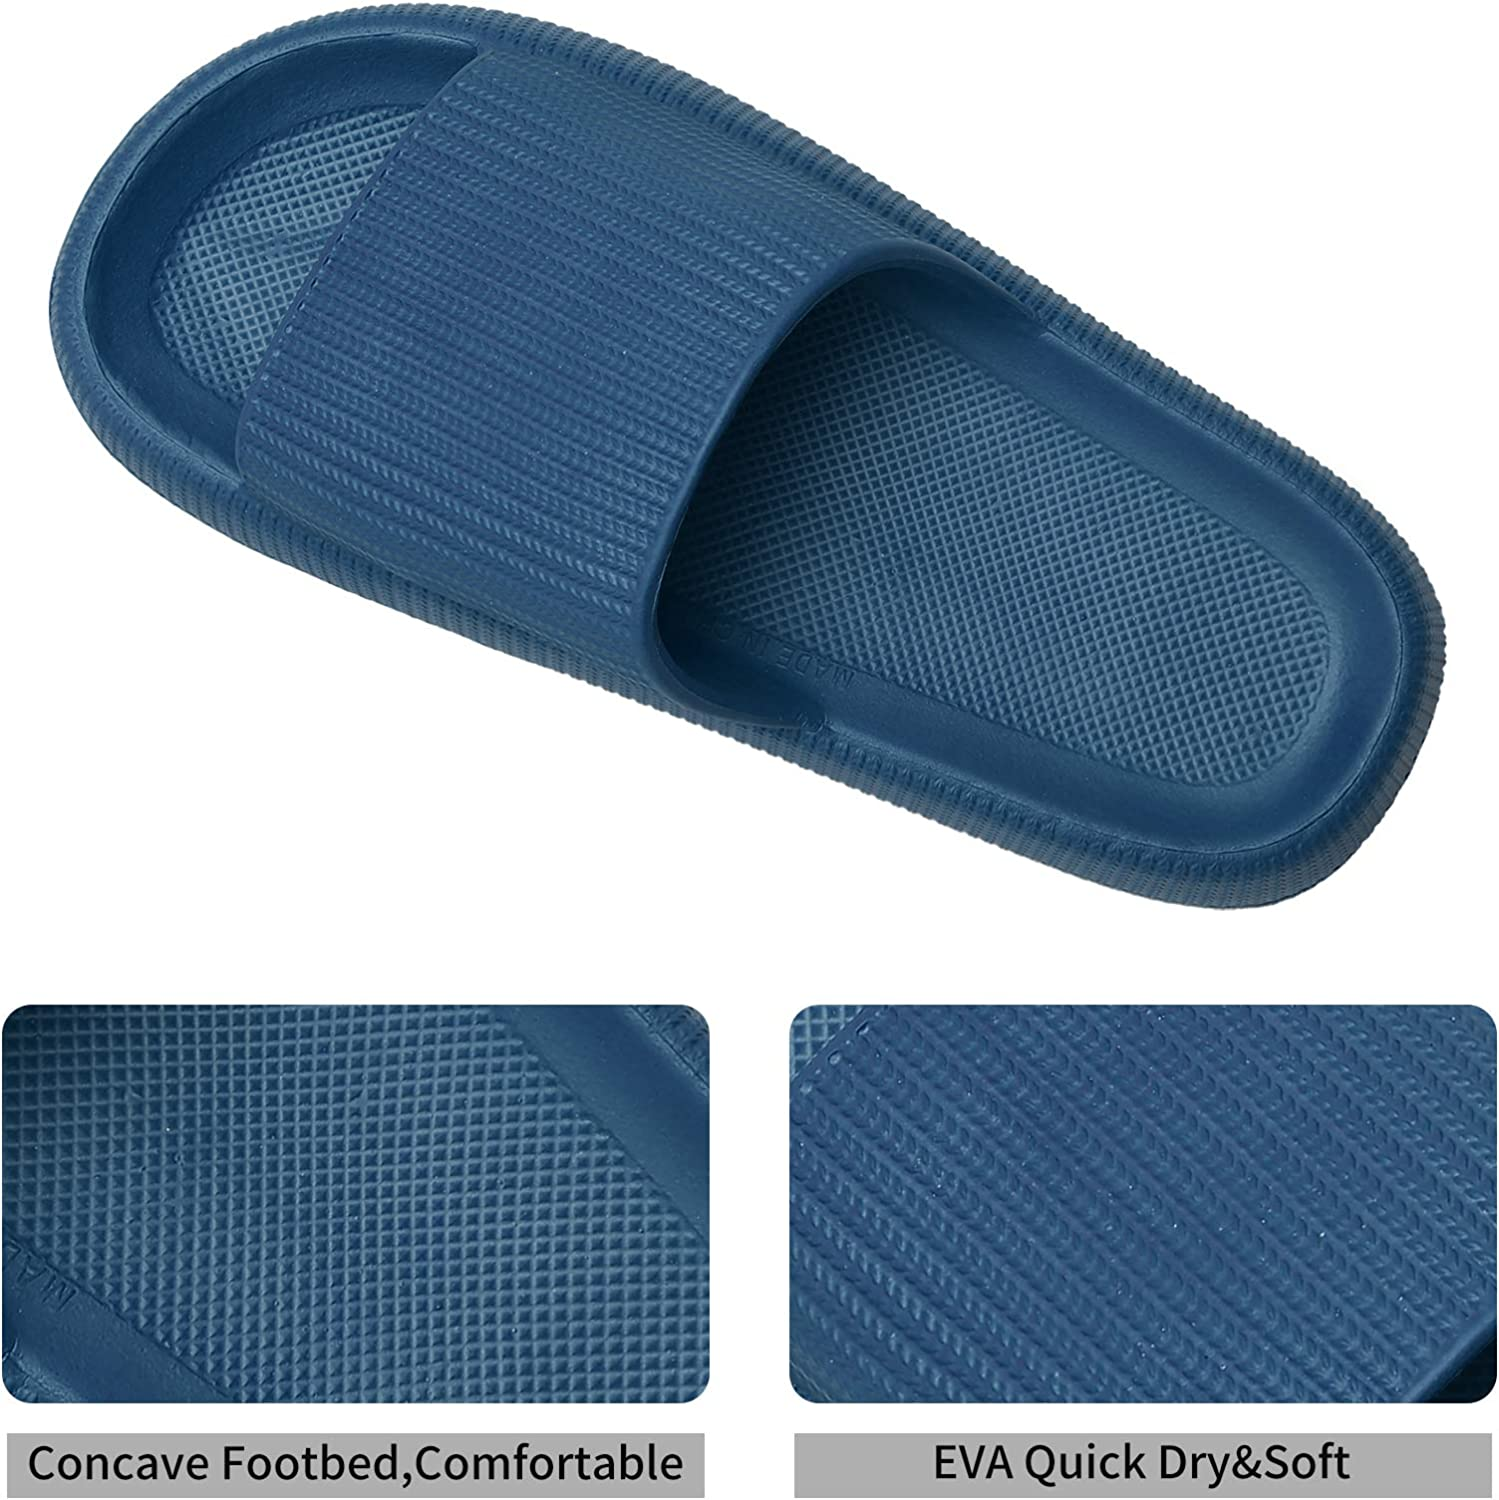 JIASUQI Slippers for Women Men Shower Quick Drying Bathroom Sandals Open Toe Soft Non-Slip Massage Pool Gym House Slipper for Indoor /& Outdoor